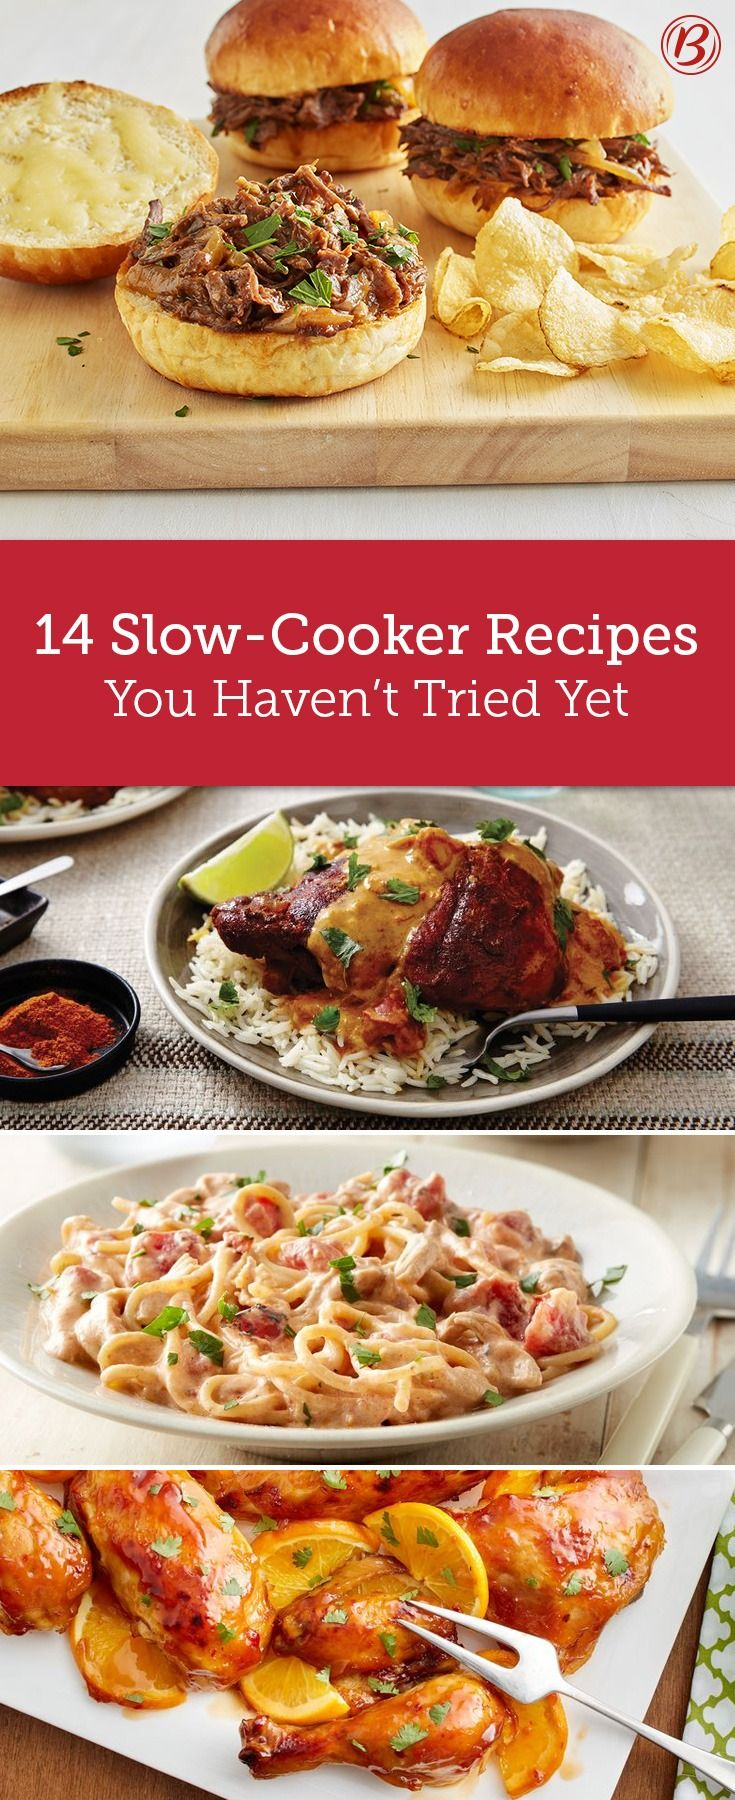 5 Crockpot Chicken Recipes You Havent Tried—But Need To 5 Crockpot Chicken Recipes You Havent Tried—But Need To new foto